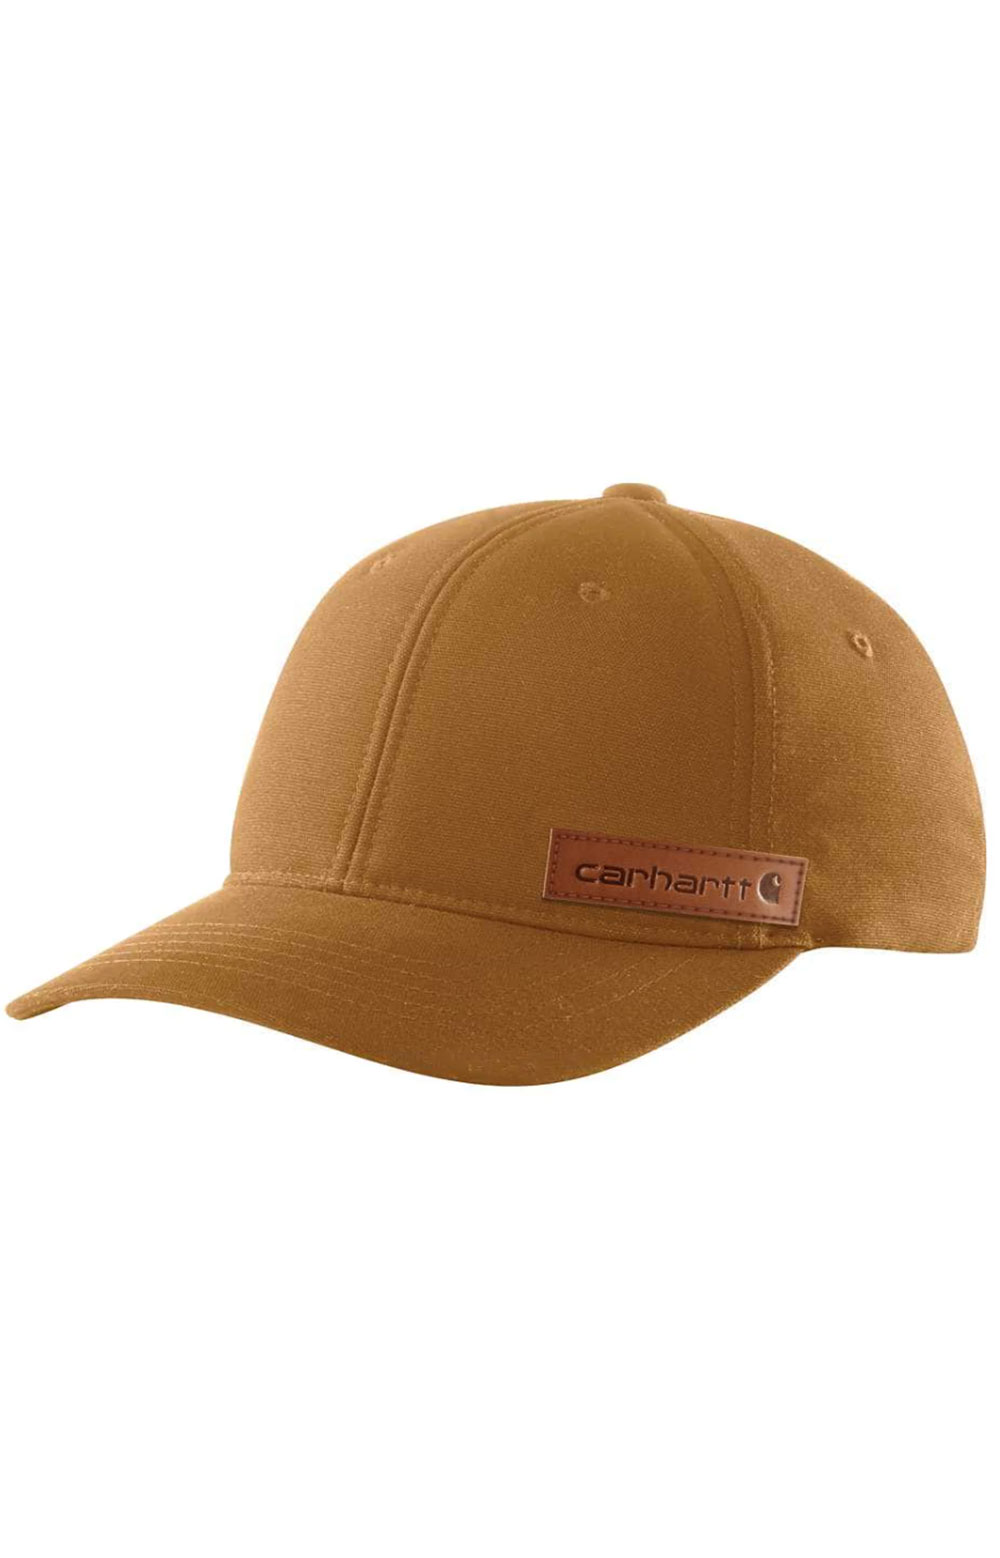 (104298) Rugged Flex Canvas Full-Back Fitted Logo Graphic Cap - Carhartt Brown